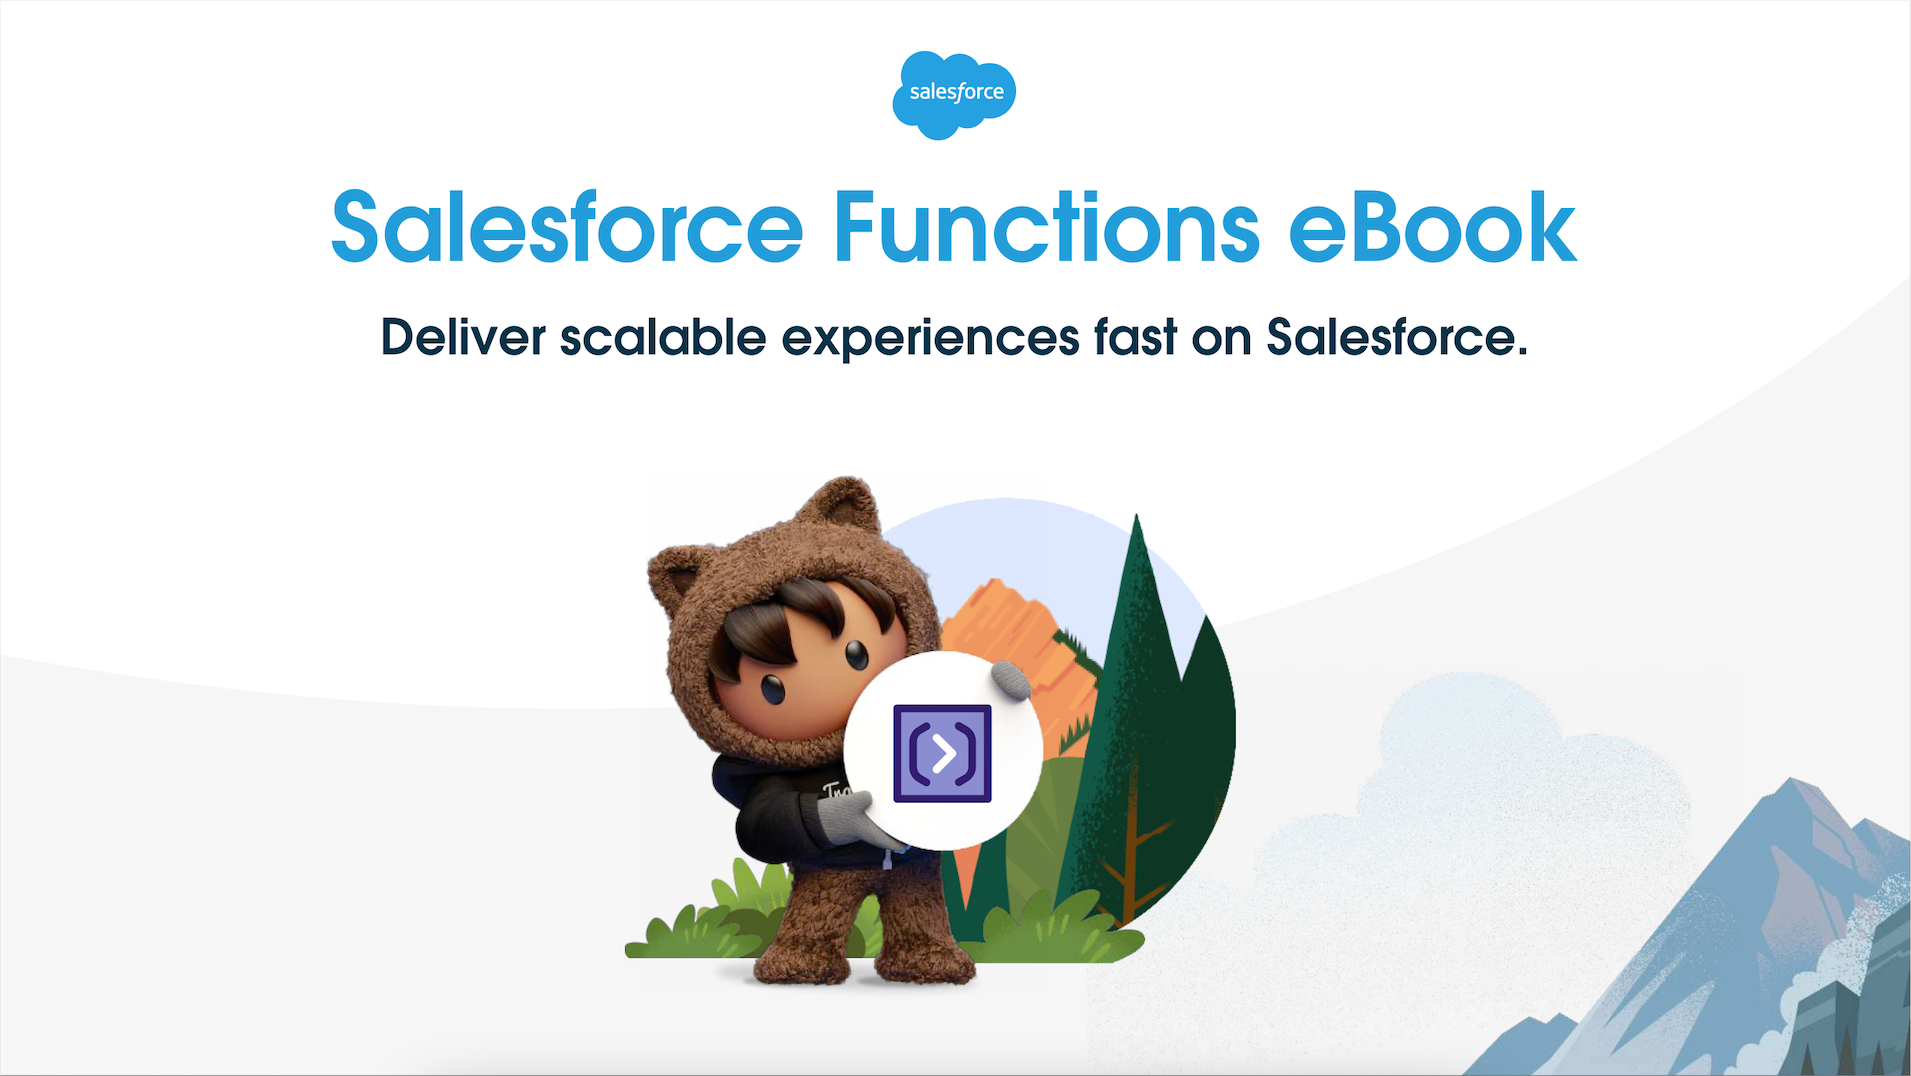 What is Salesforce Functions?